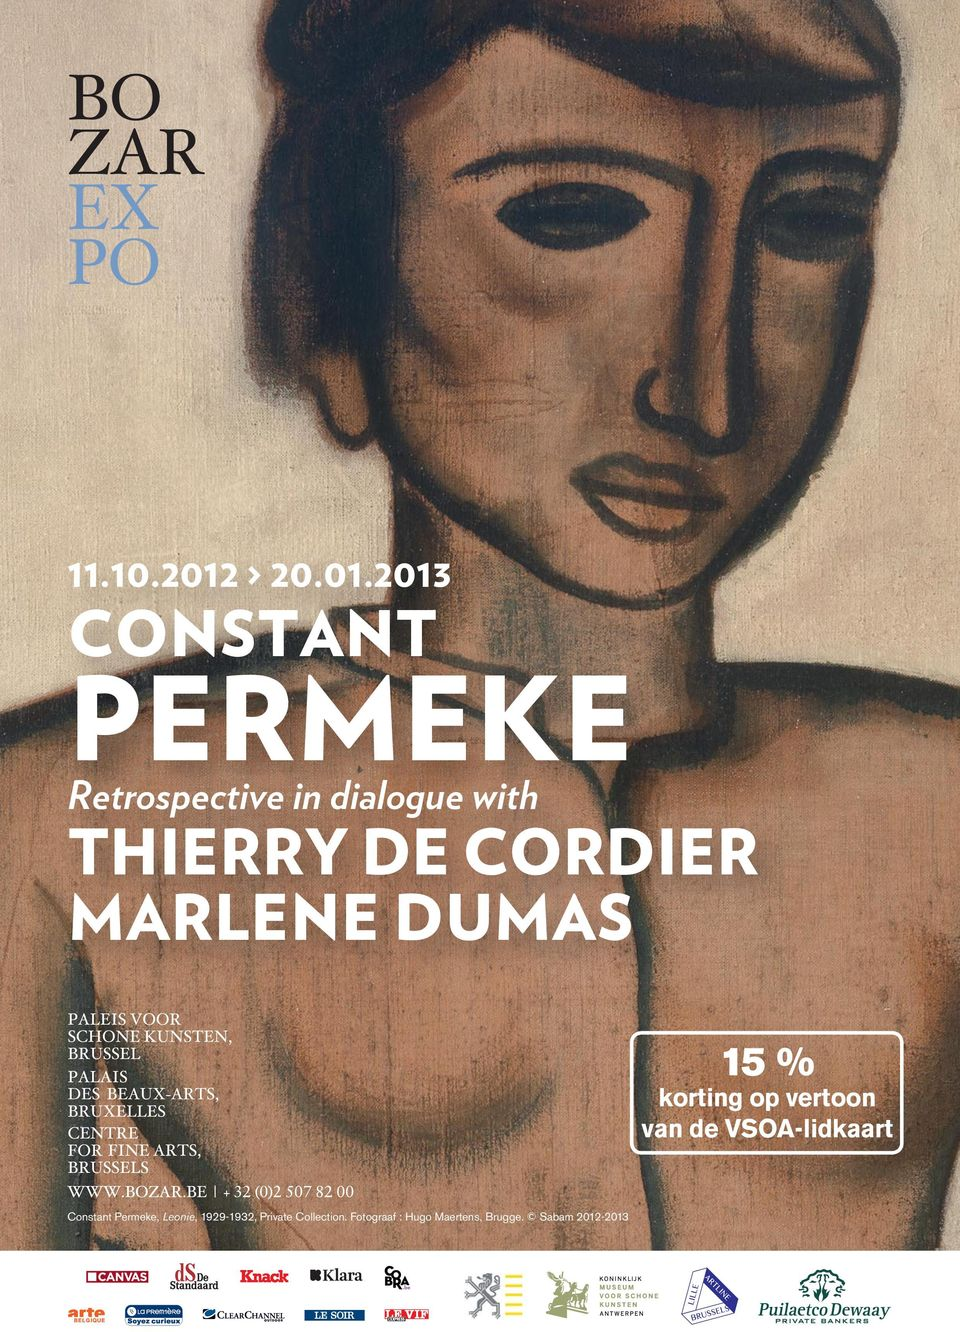 2013 CONSTANT PERMEKE Retrospective in dialogue with THIERRY DE